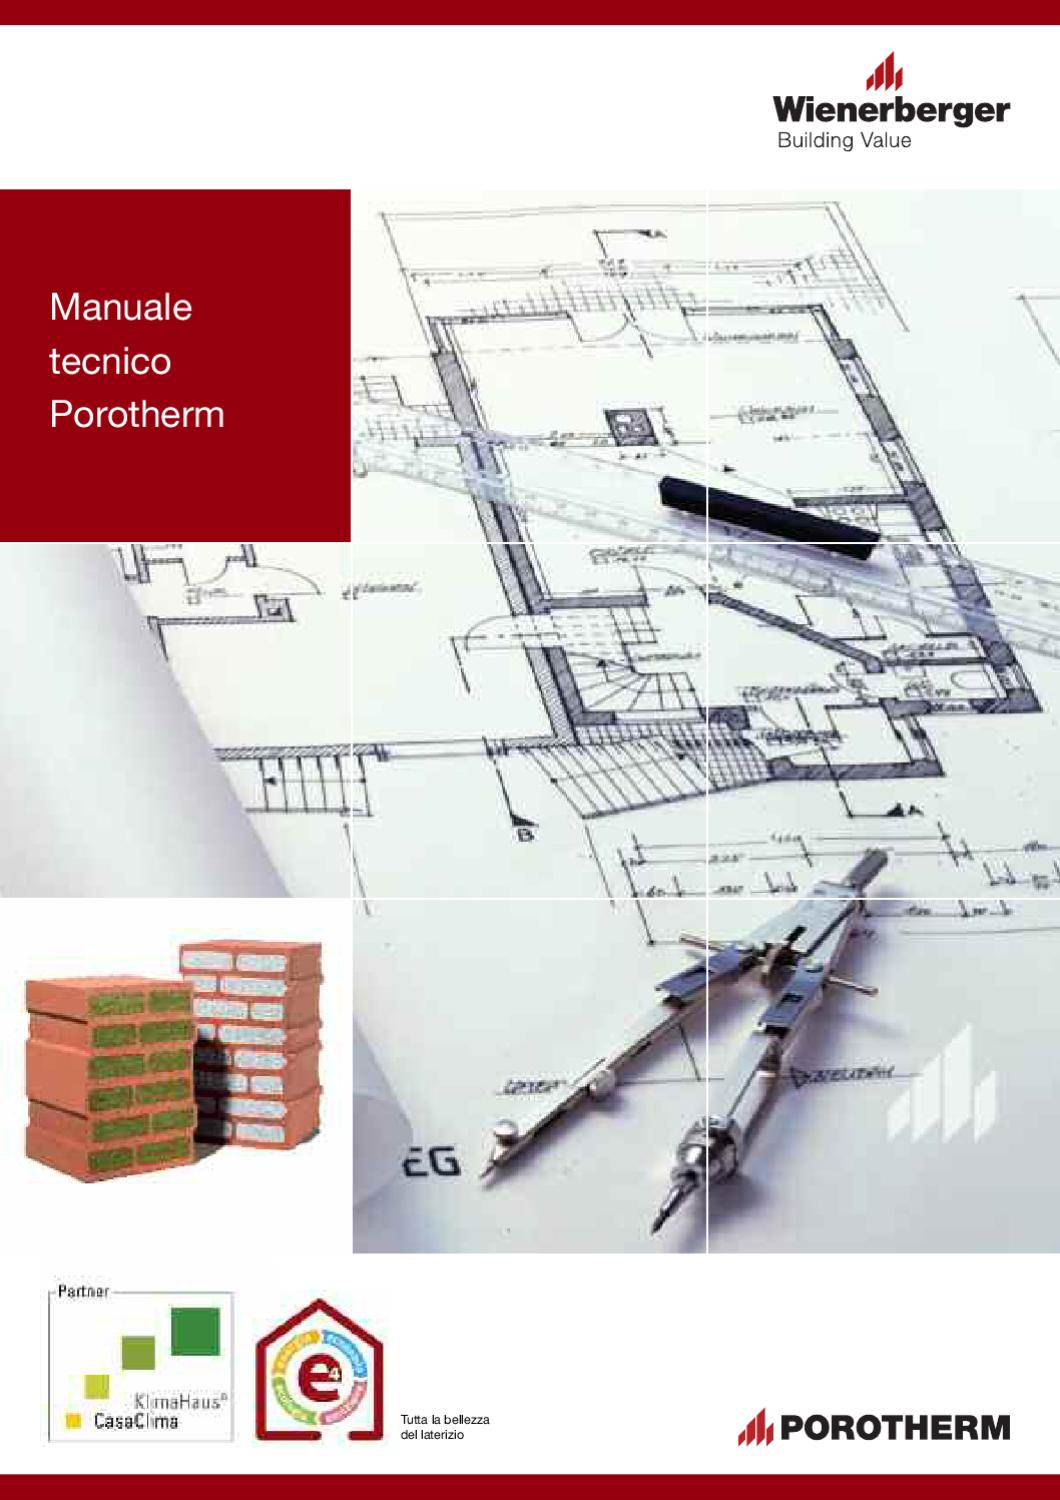 manuale tecnico porotherm by wienerberger ag issuu